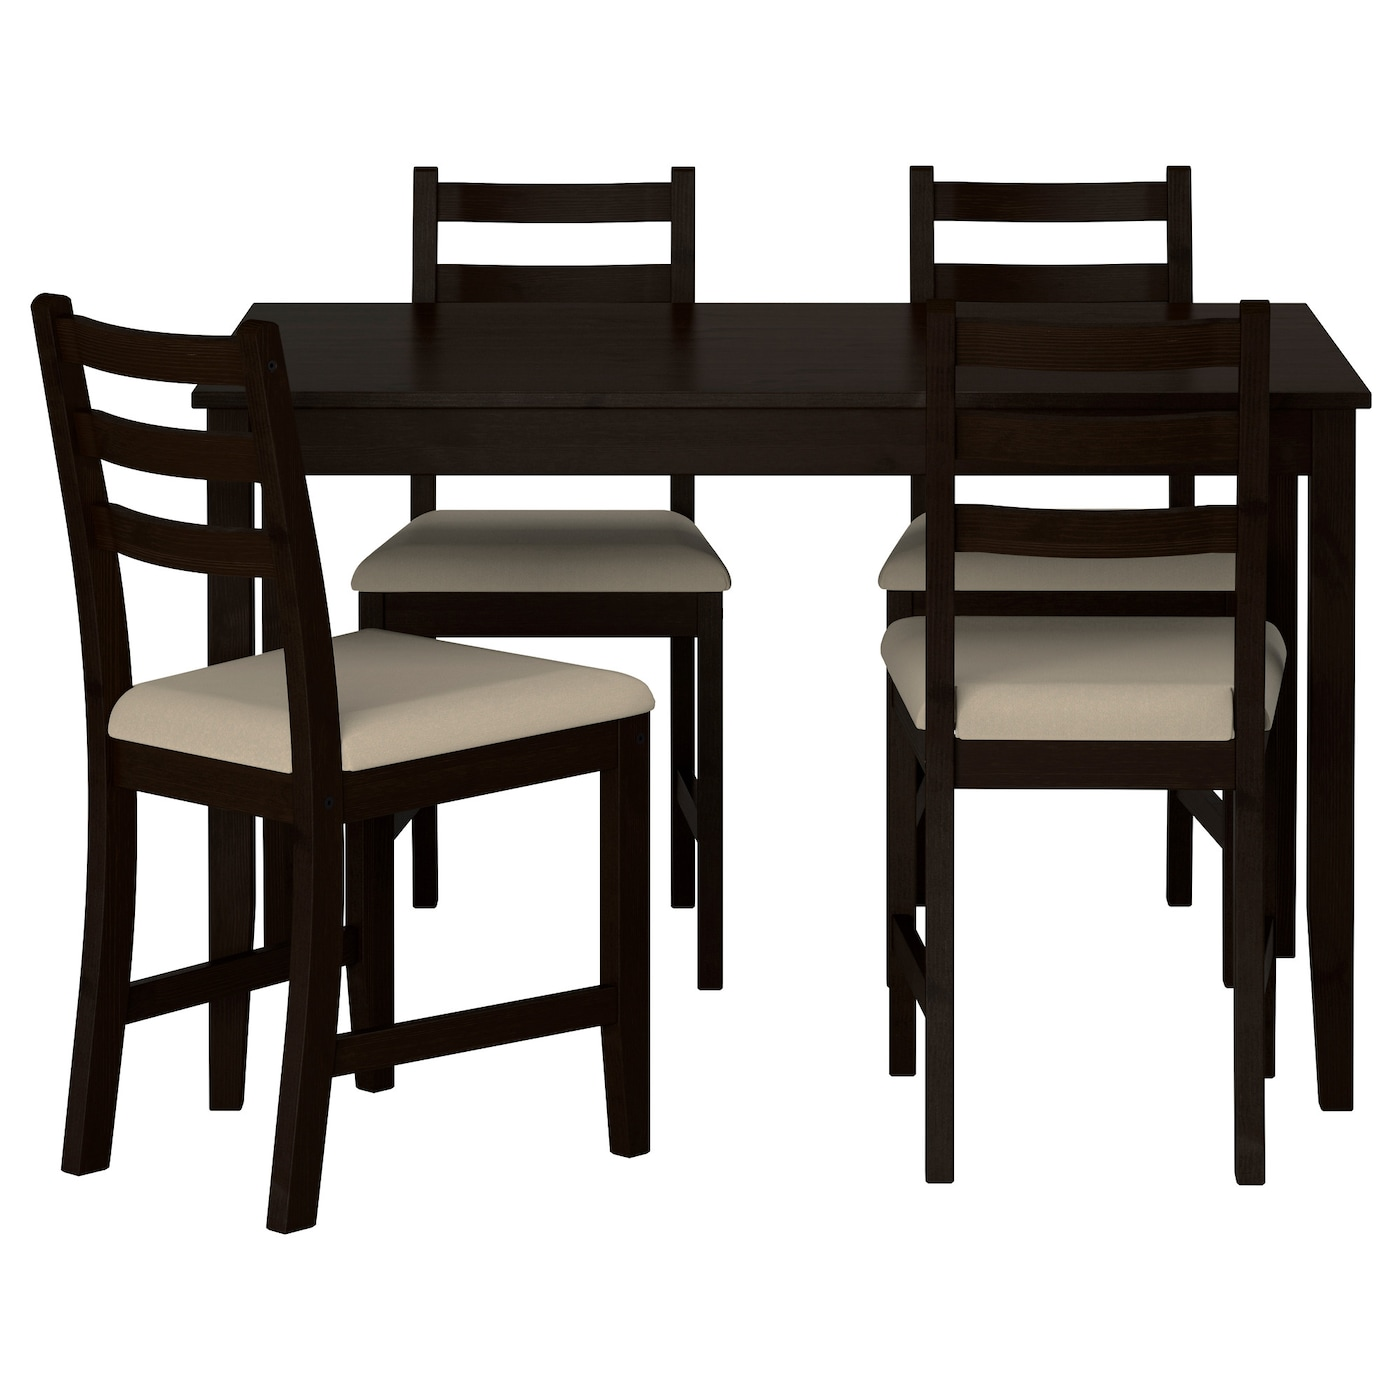 Lerhamn table and 4 chairs black brown ramna beige 118x74 for Small black dining table and chairs